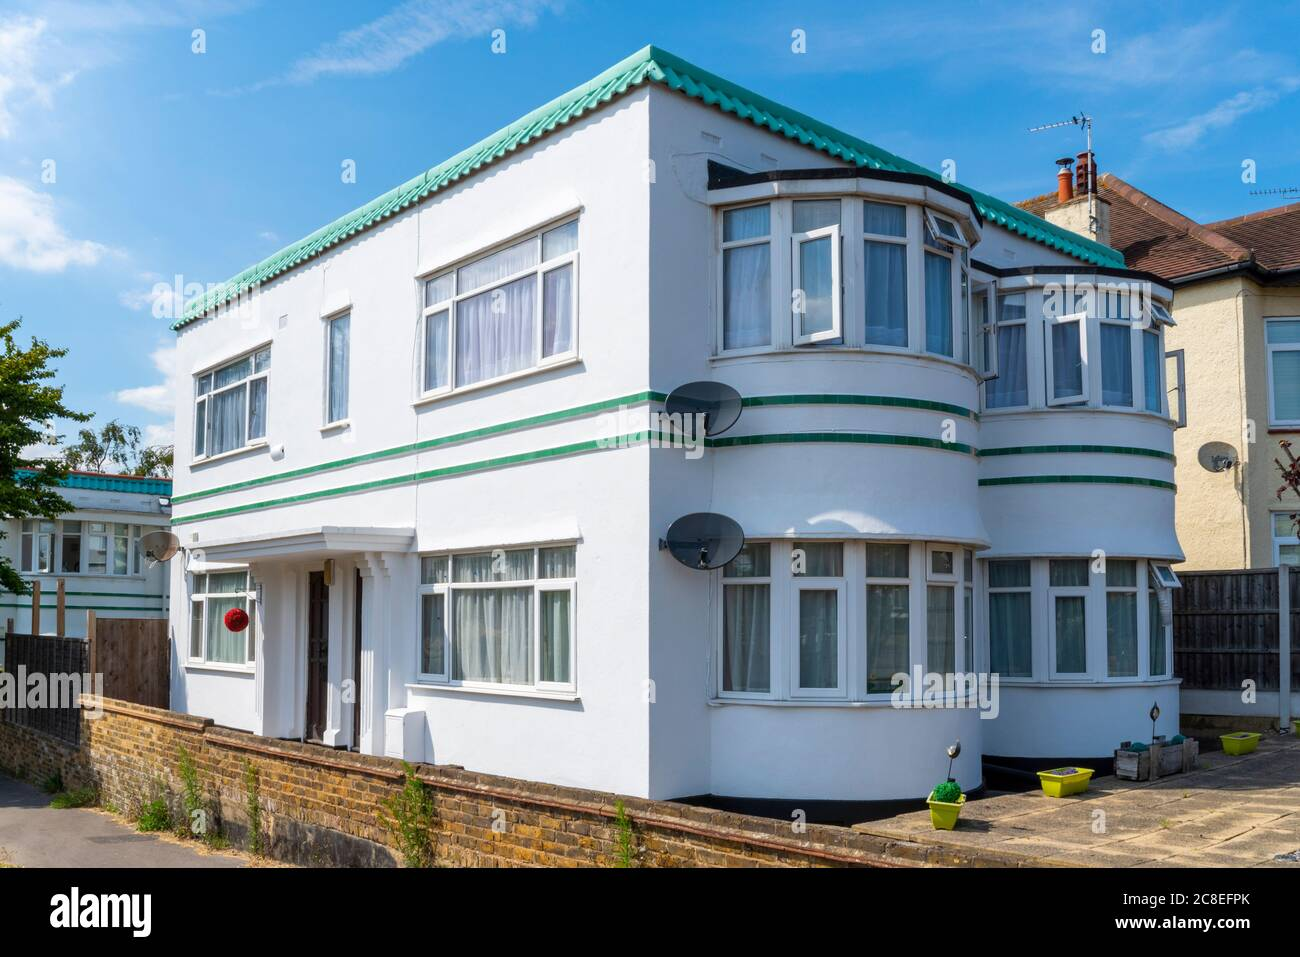 Art Deco Style Property In Westcliff On Sea Essex Uk Bright White Residential Home English 1930s Architecture Classic House Design Trim Stock Photo Alamy